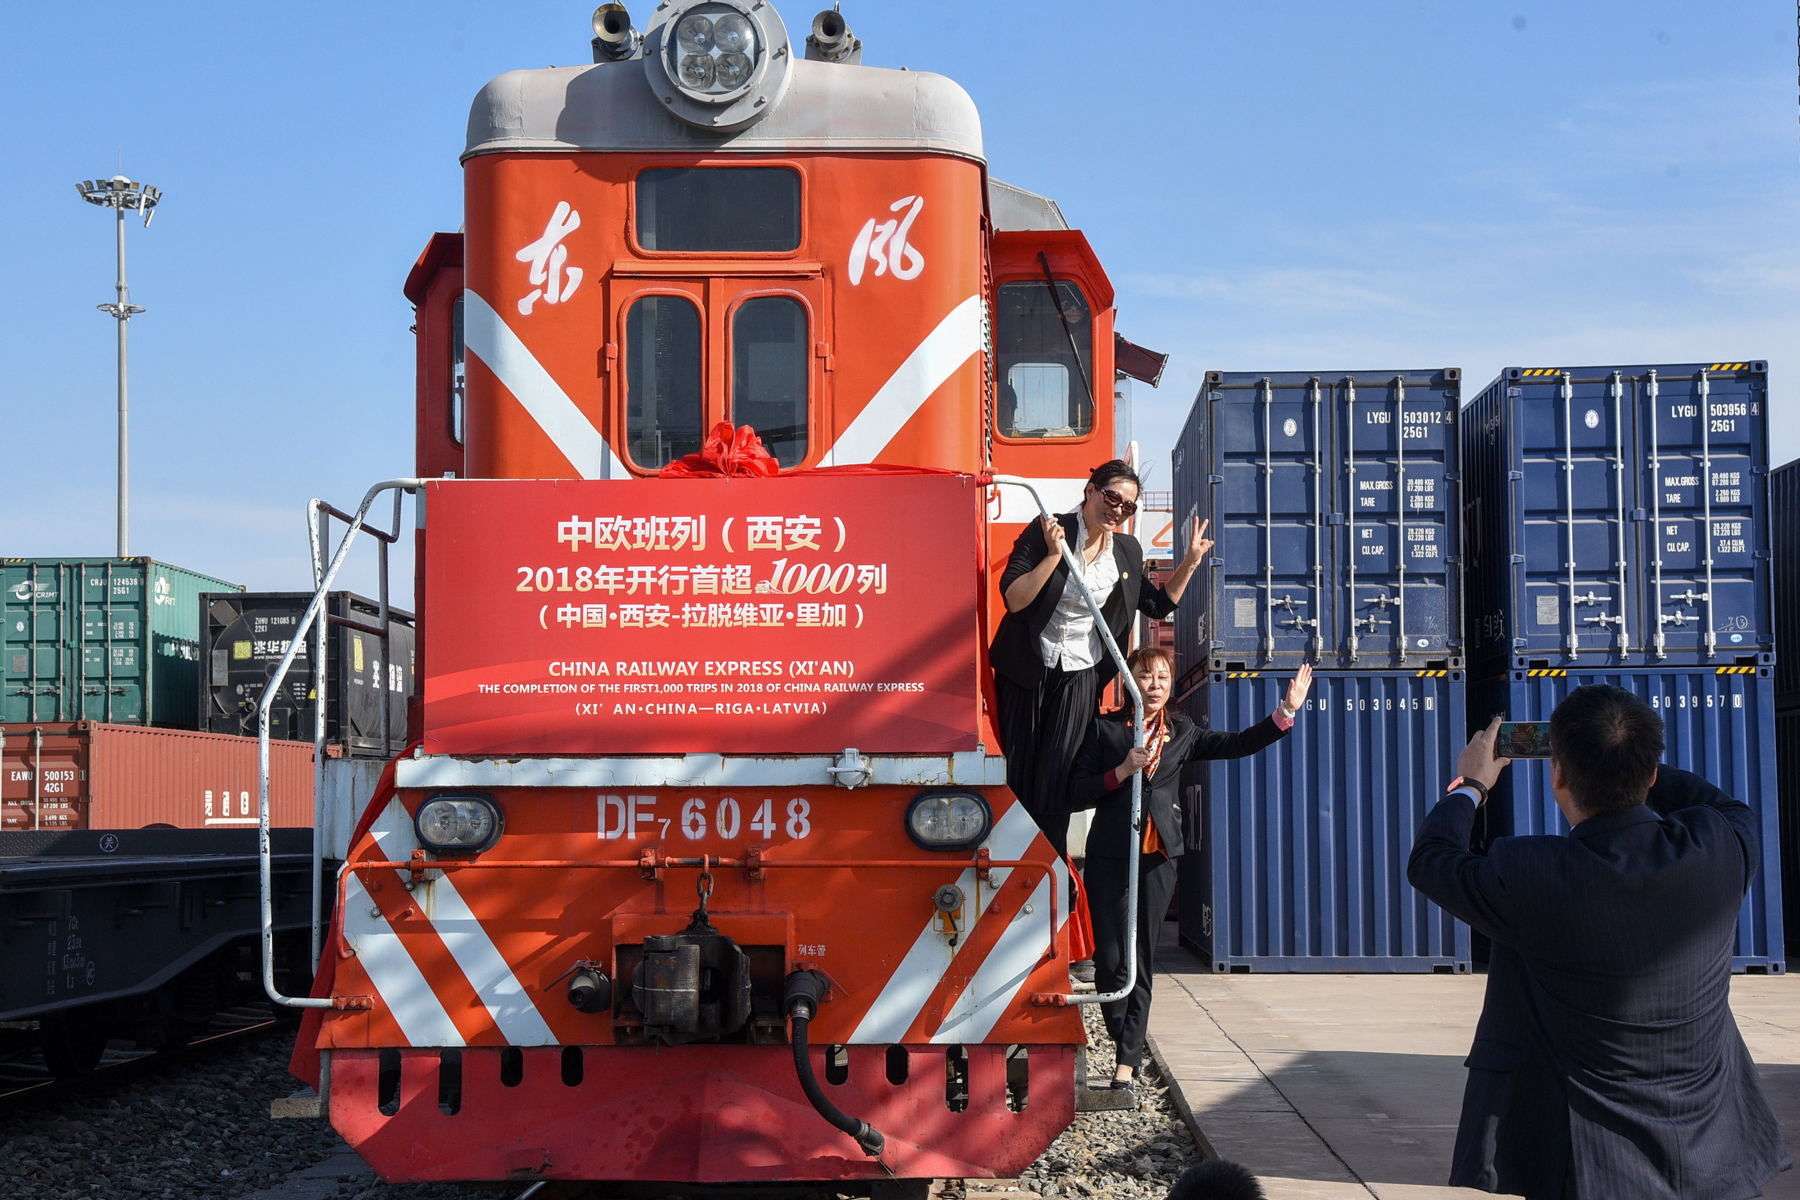 A freight train departs Xi'an for the Latvian capital of Riga during a ceremony to mark the 1,000th Europe-bound rail trip from Xi'an of the year, Shaanxi province, October 30, 2018. The vast railway network China has laid across Central Asia is a key element of China's ambitious Belt and Road Initiative. (Lao Qiang/ImagineChina)